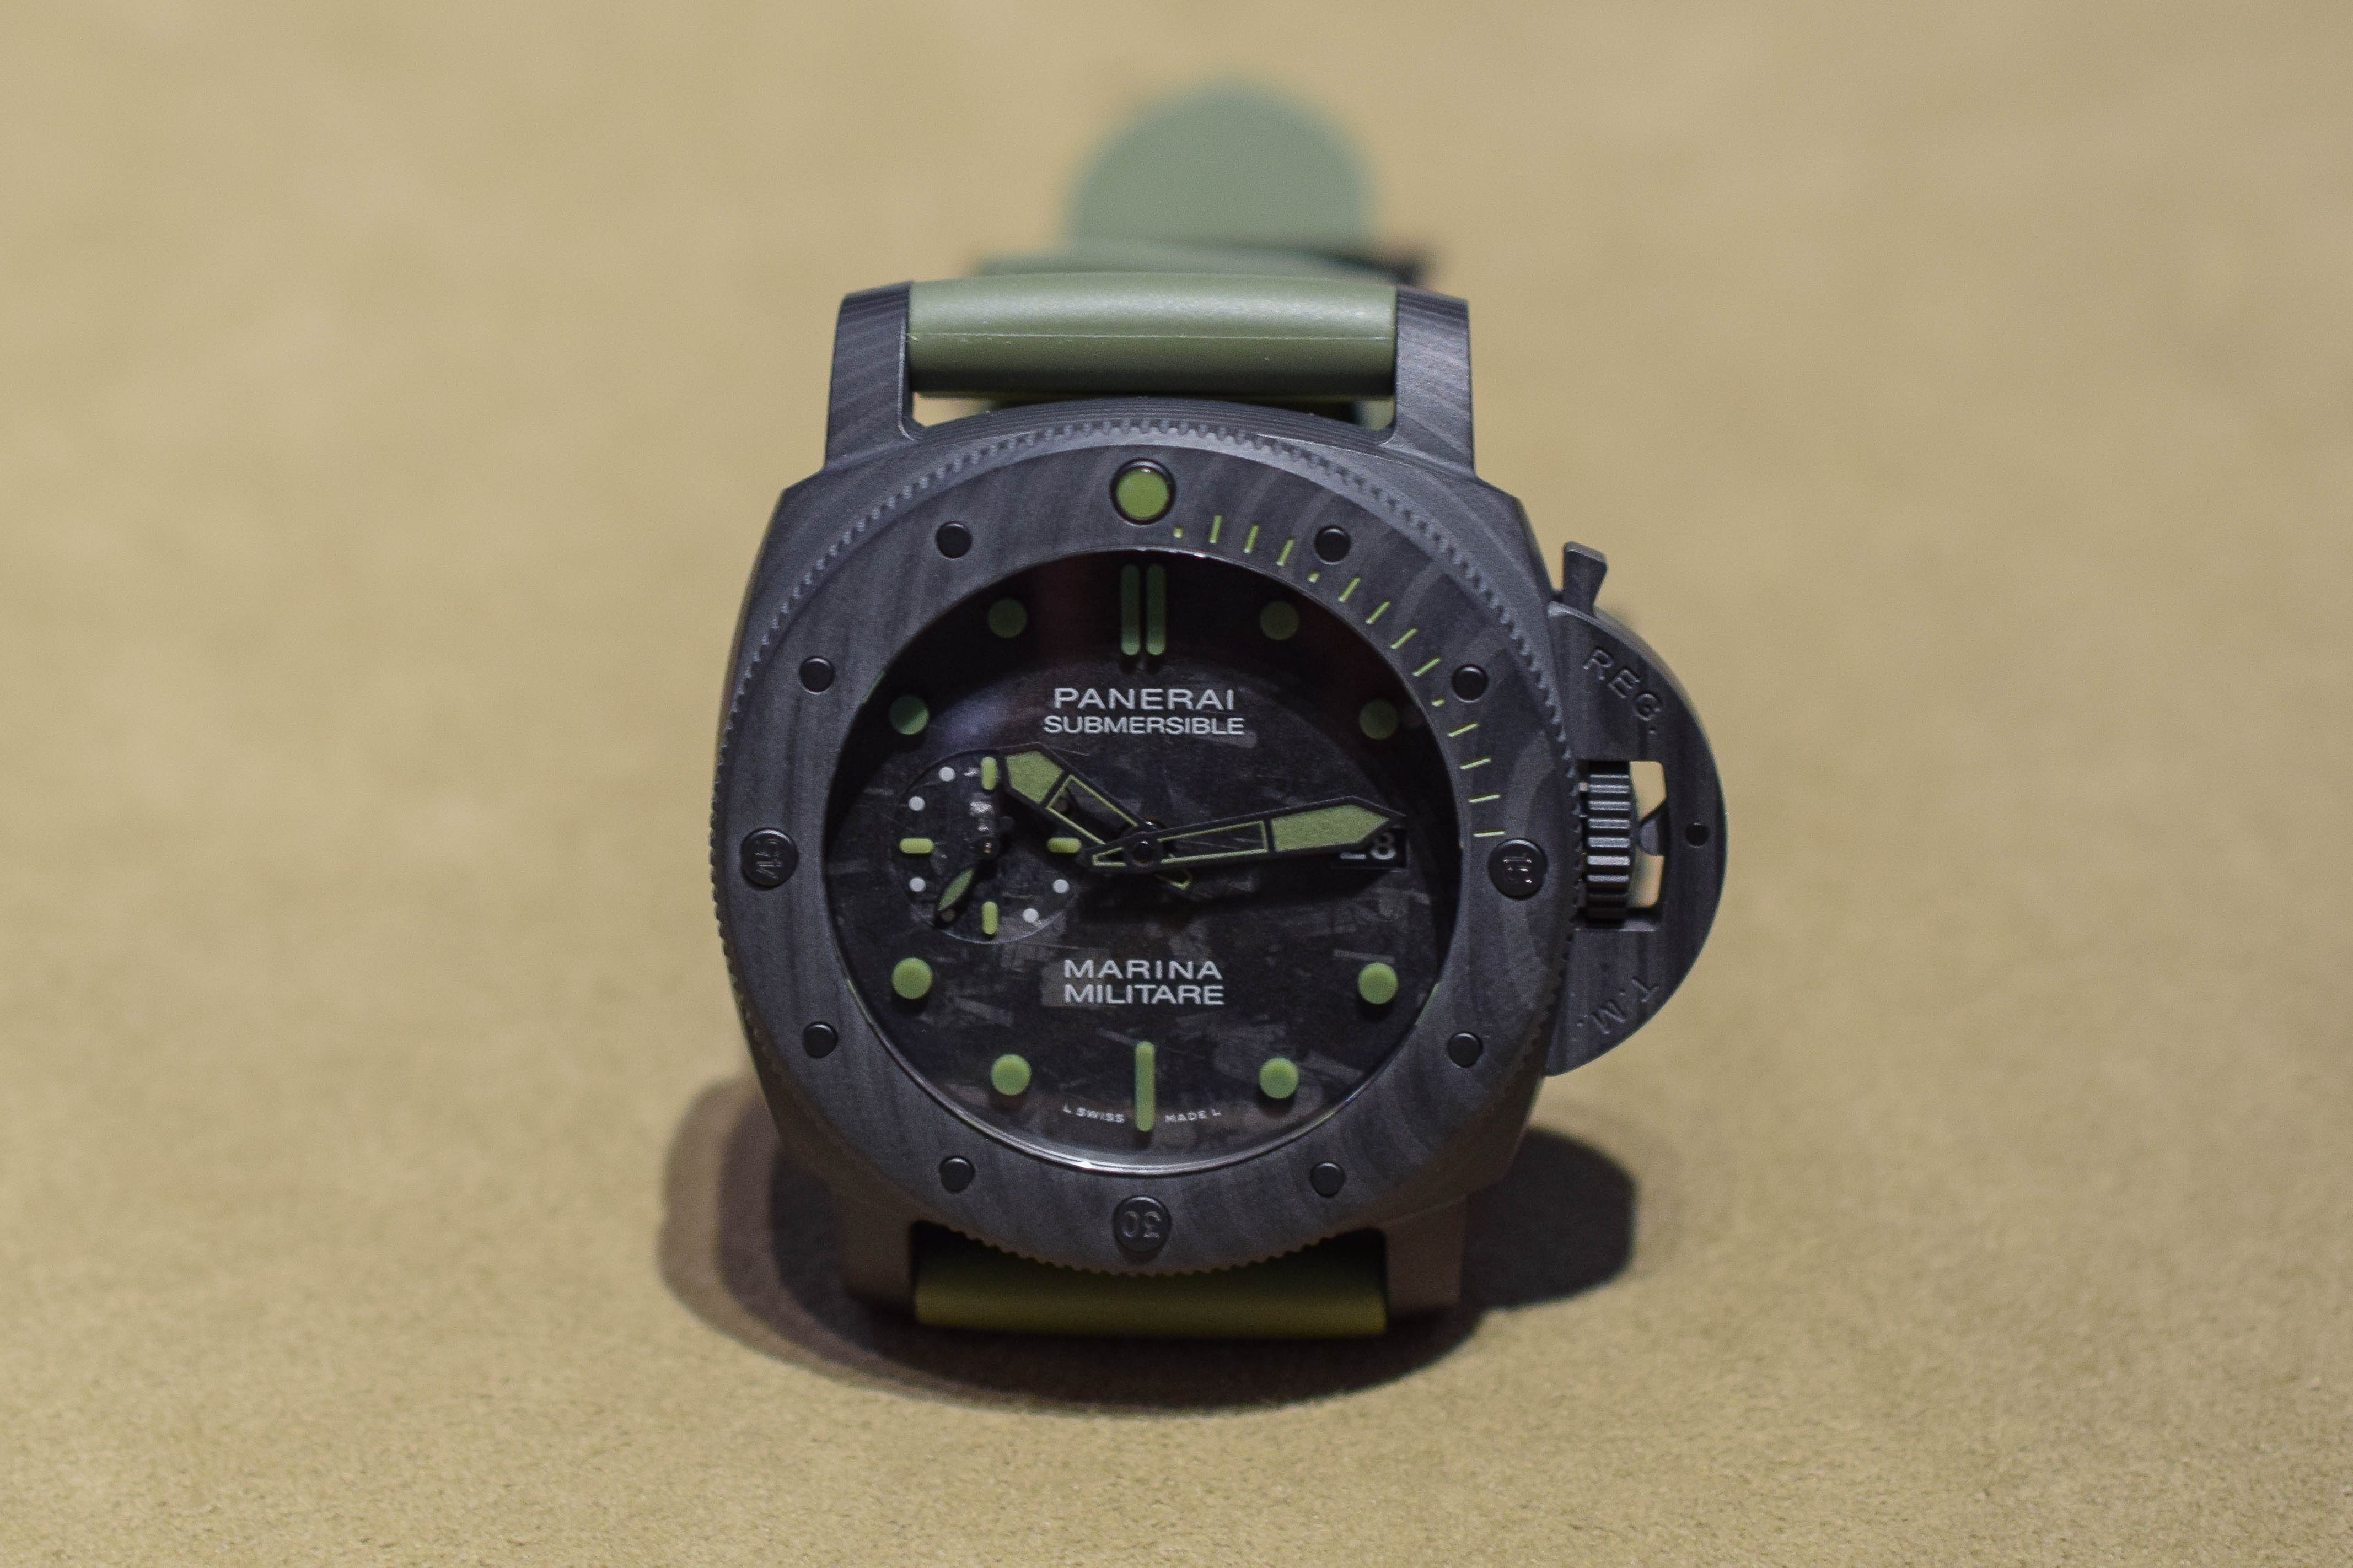 Panerai Submersible Marina Militare Carbotech PAM00961 - SIHH 2019 hands-on - 3